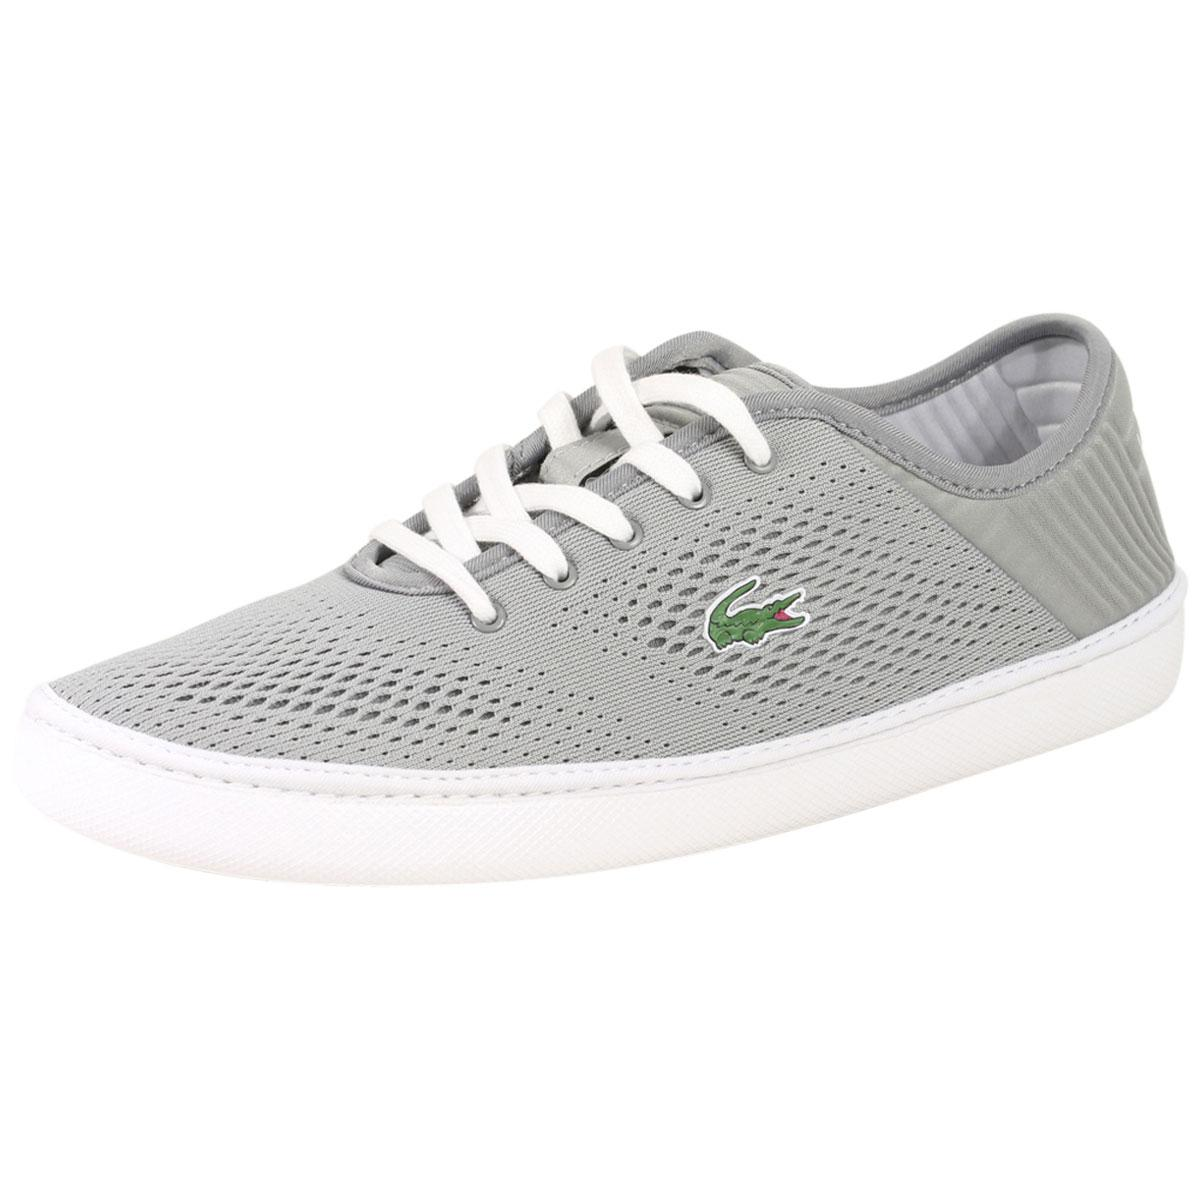 Lacoste Men's L.Ydro-Lace-118 Trainers Sneakers Shoes